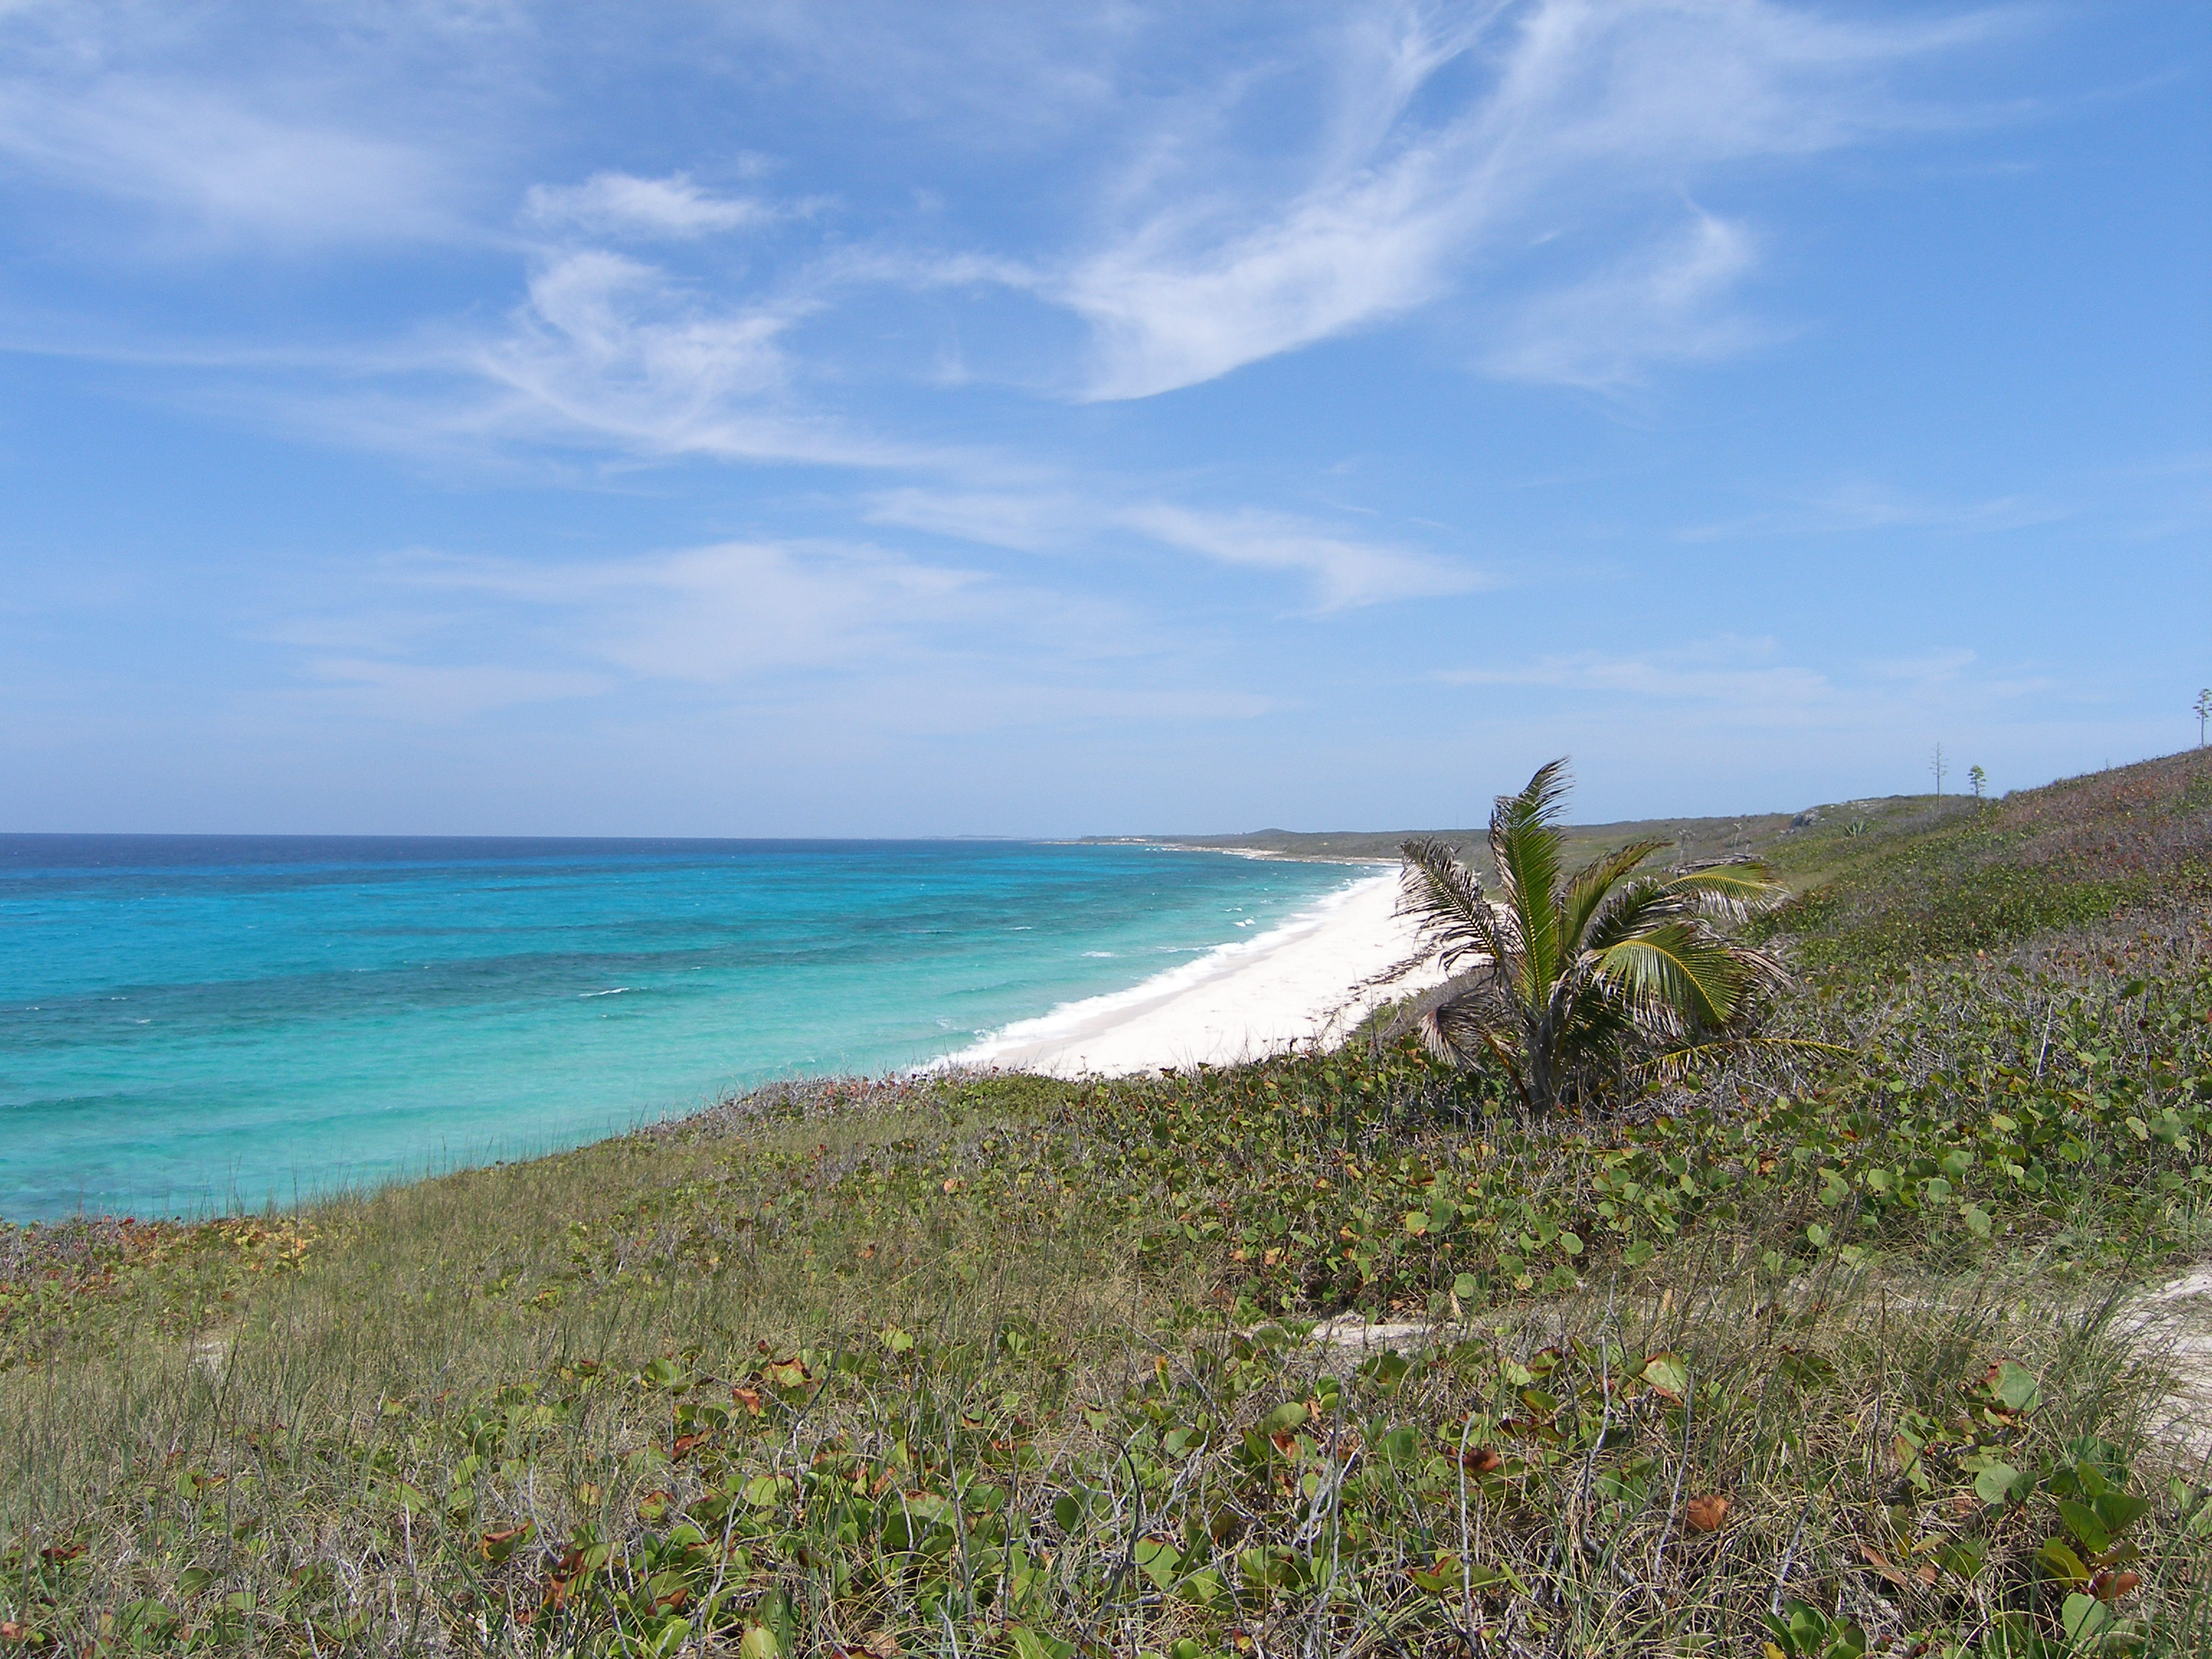 Terrain pour l Vente à Lots 13,14,& 15, Block 79, Section J Gregory Town, Eleuthera, Bahamas